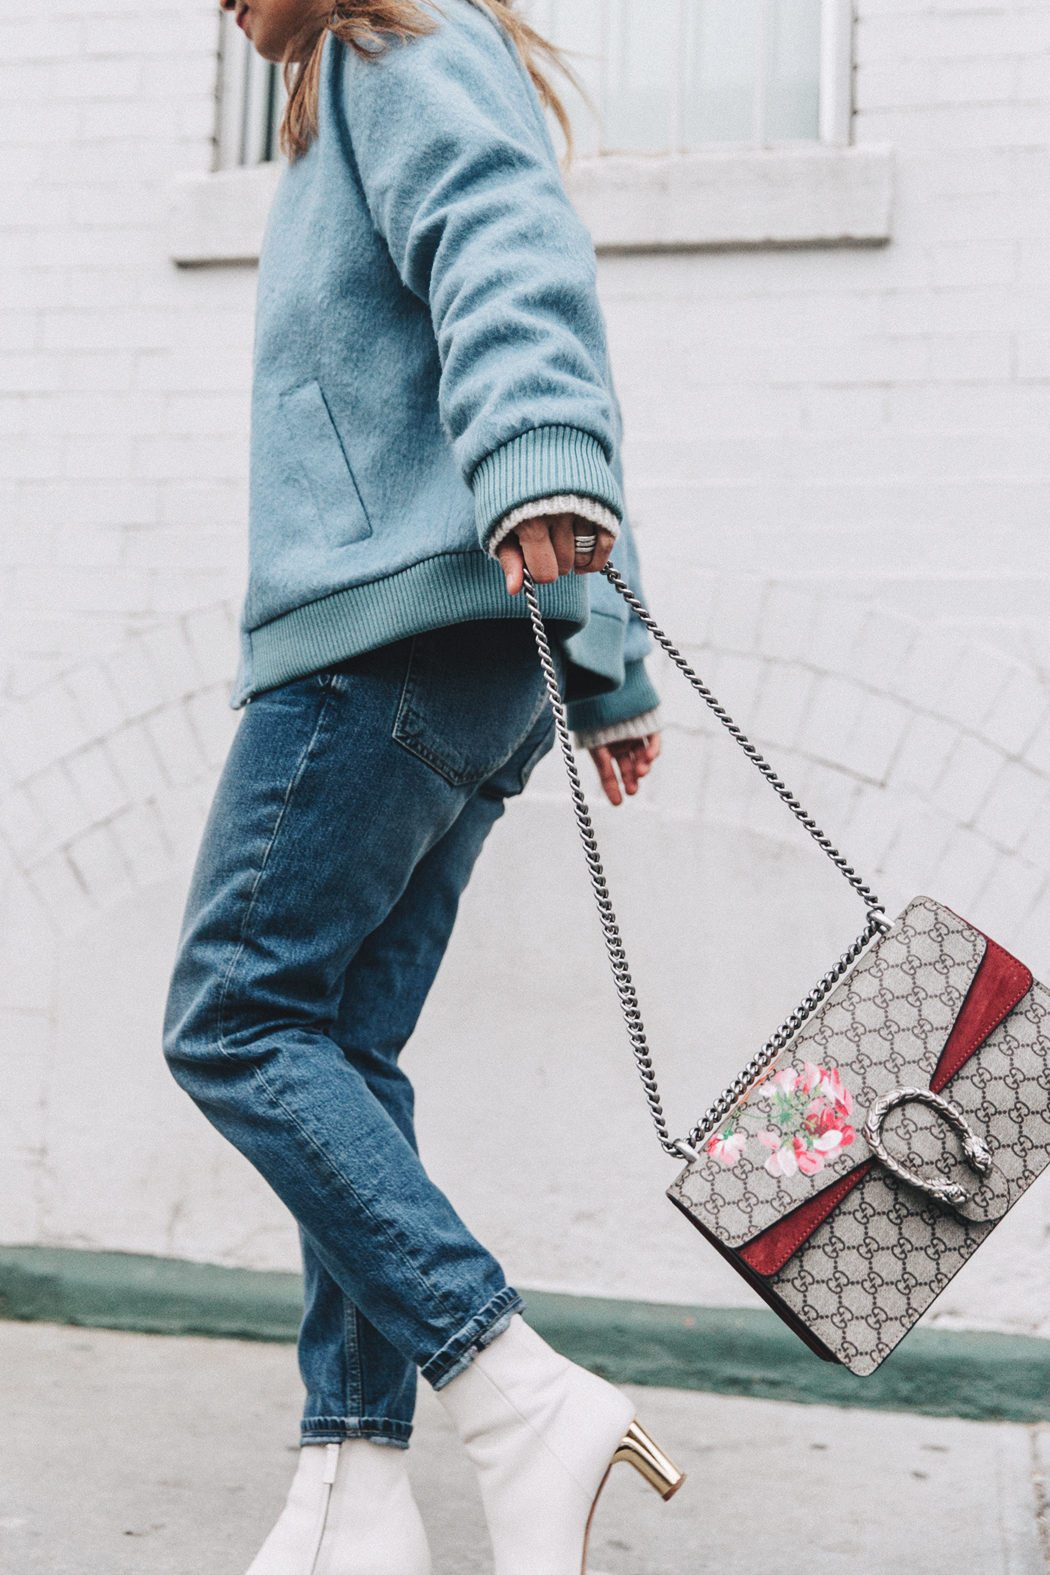 Blue_Bomber-Ganni-Topshop_Jeans-White_Boots-Gucci_Bag-Outfit-NYFW-New_York-Street_Style-7